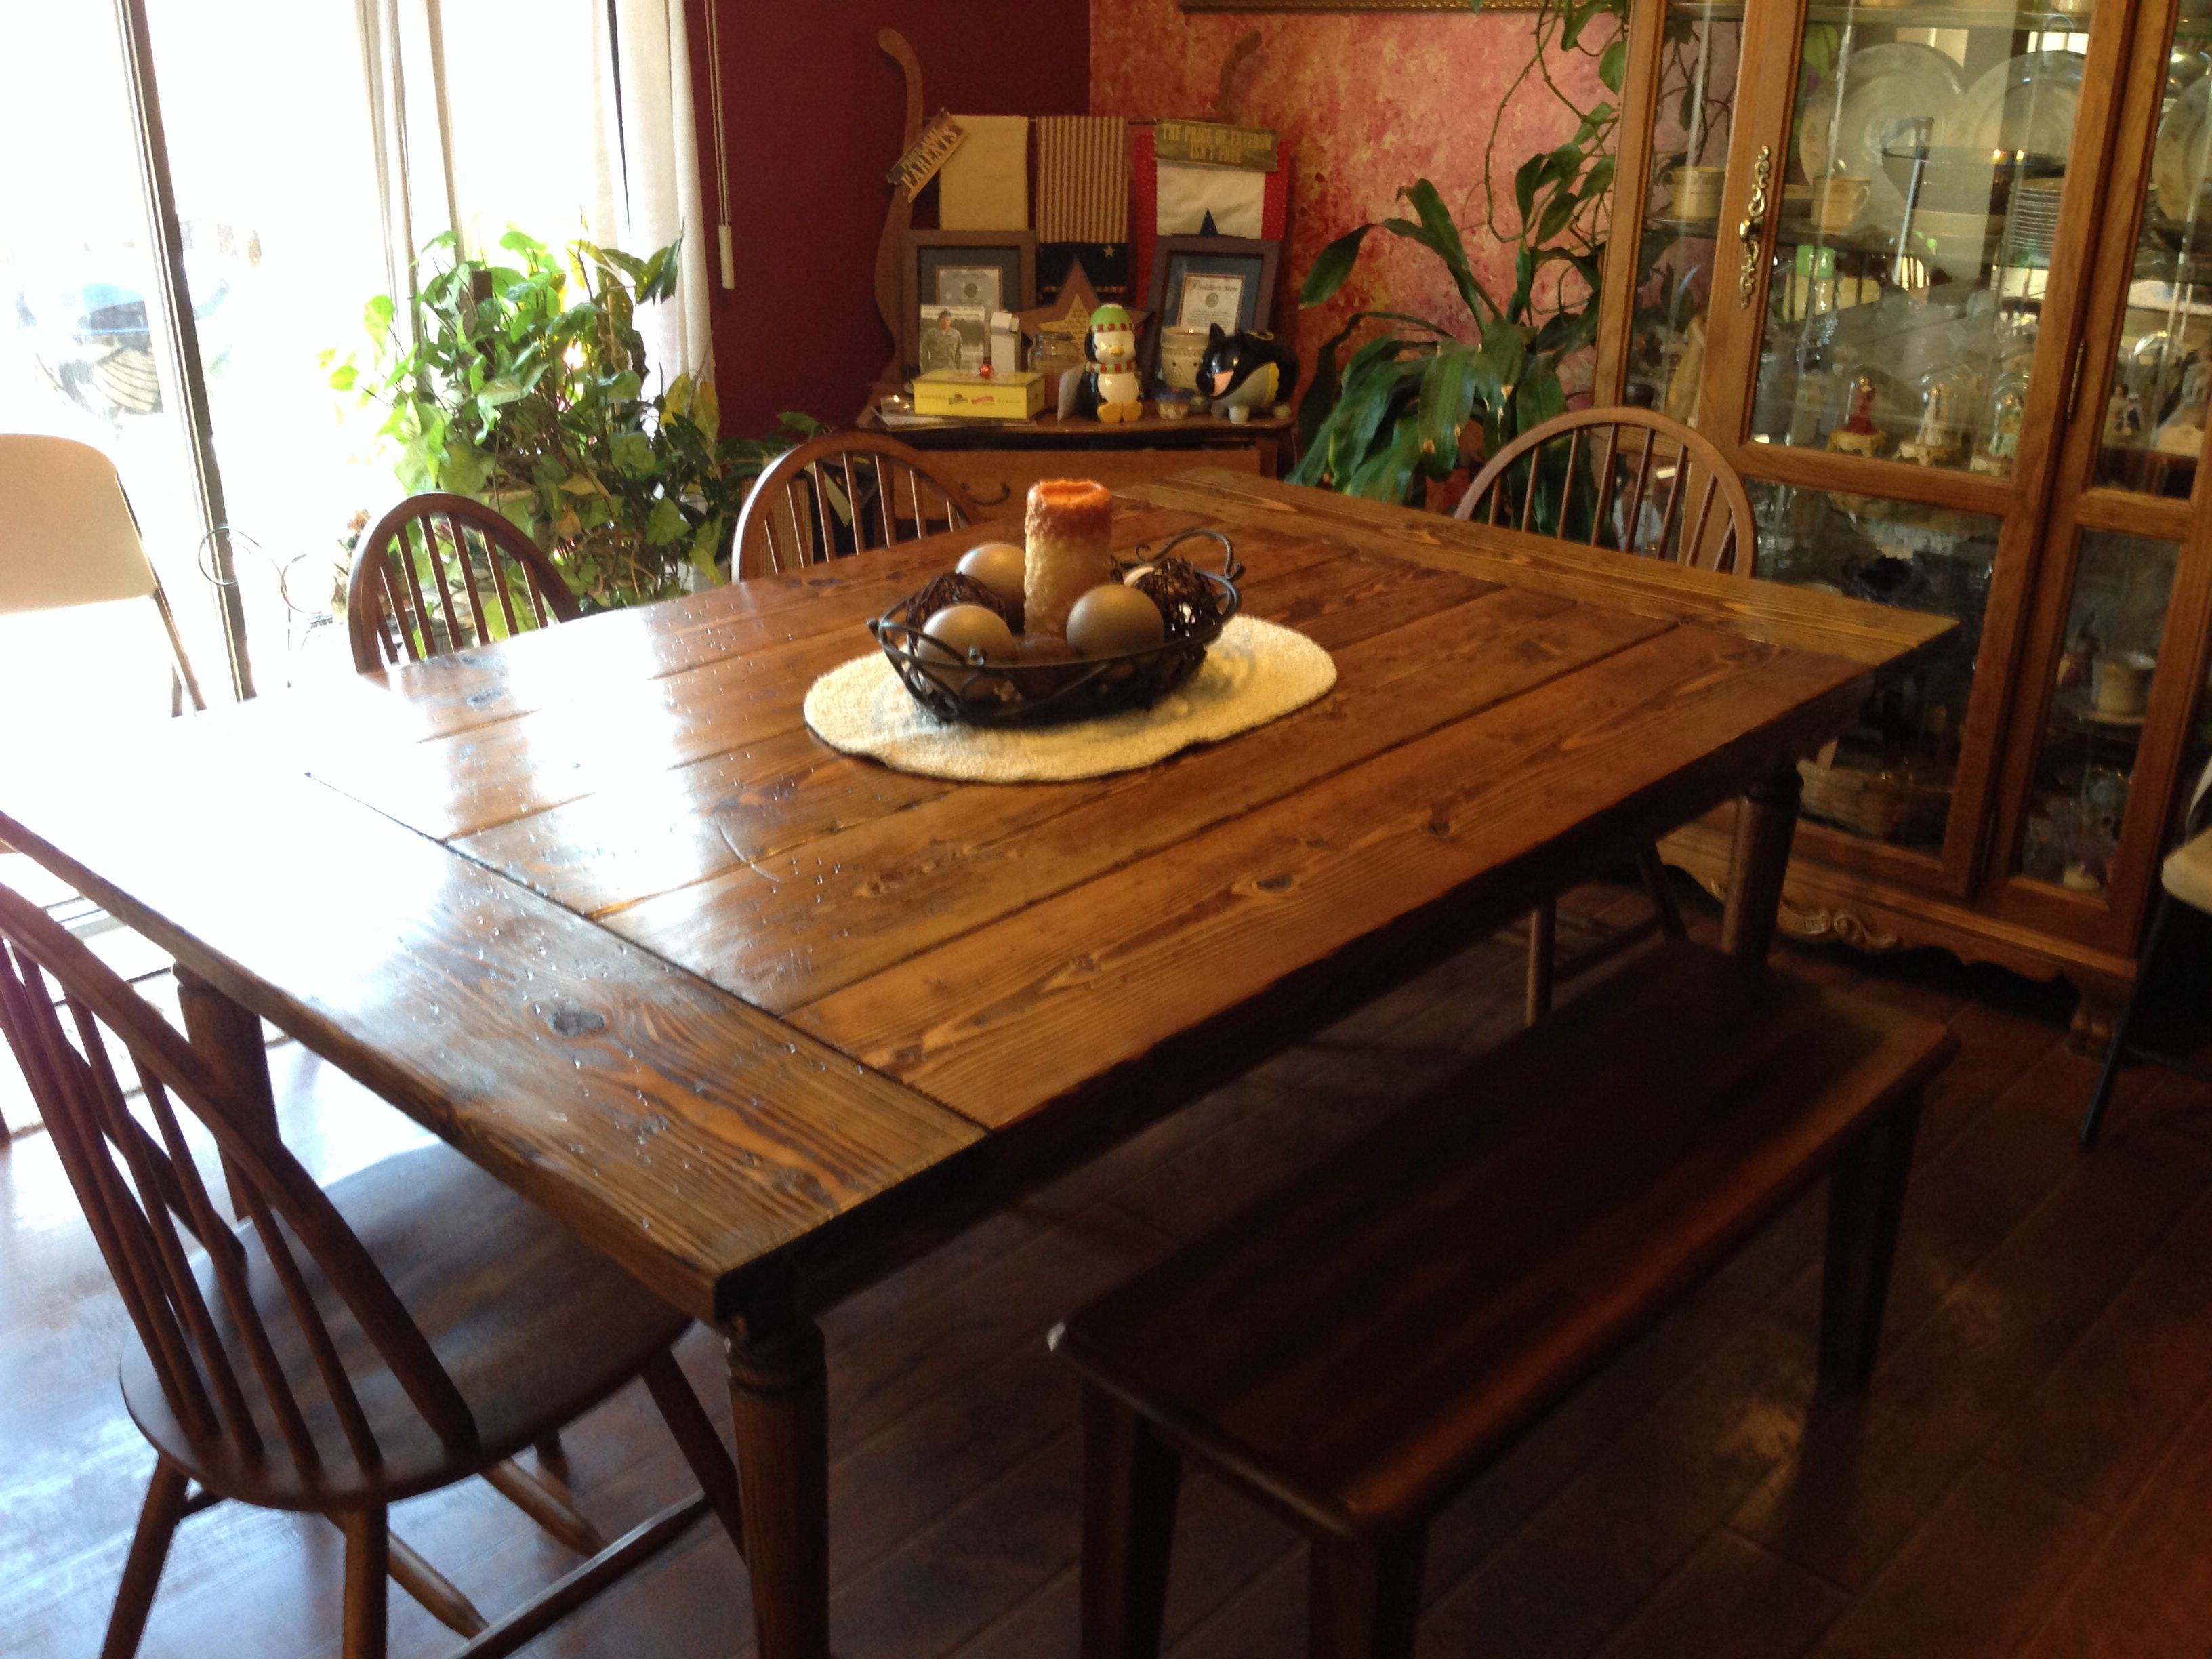 Country kitchen table pretty interiors and decor pinterest for Kitchen table decor